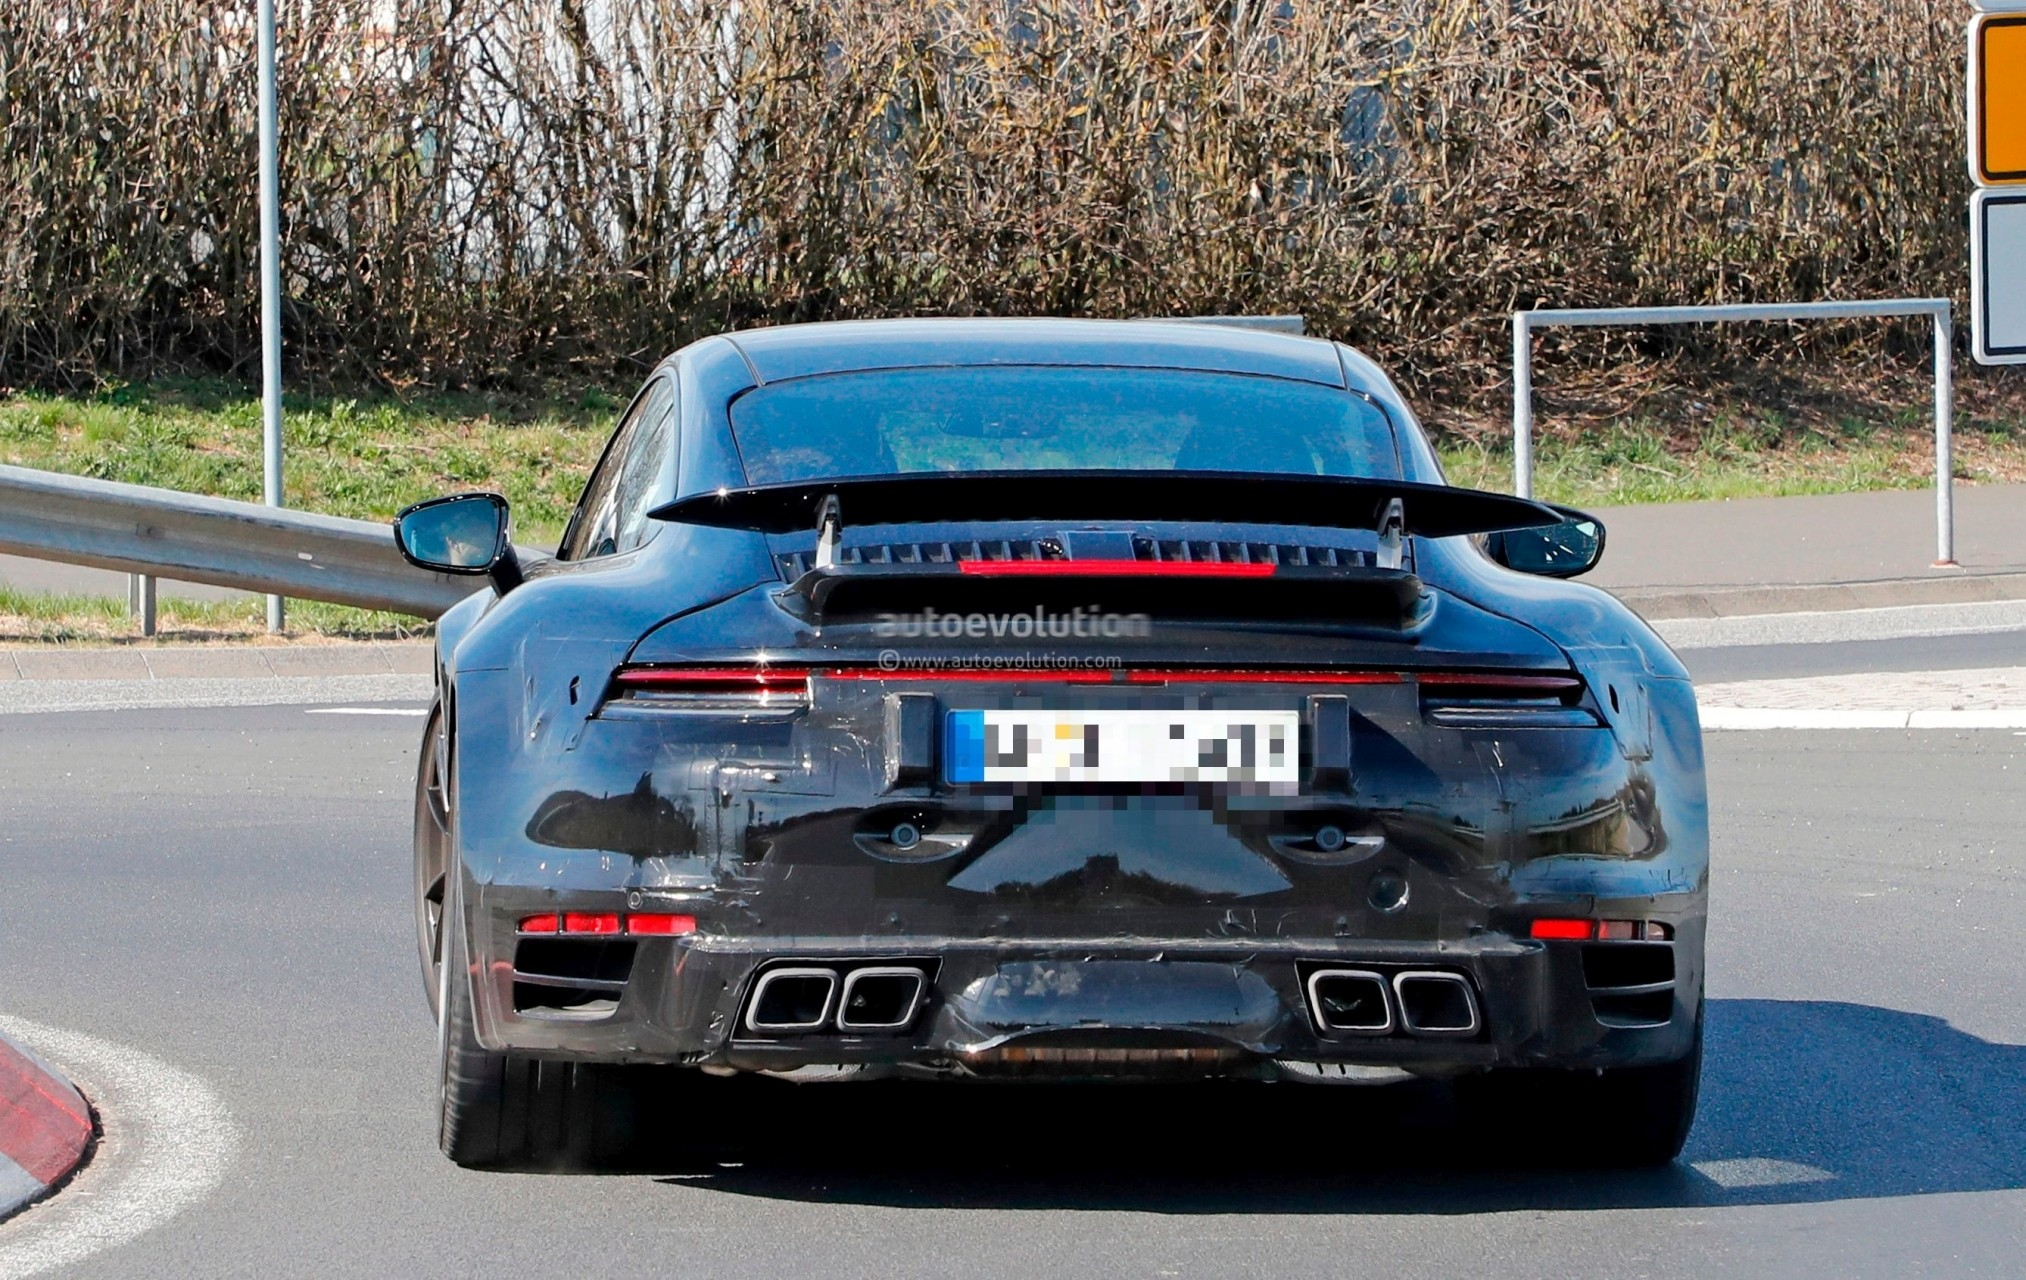 Spyshots: 2020 Porsche 911 Turbo Shows New Active Rear Wing on Nurburgring - autoevolution